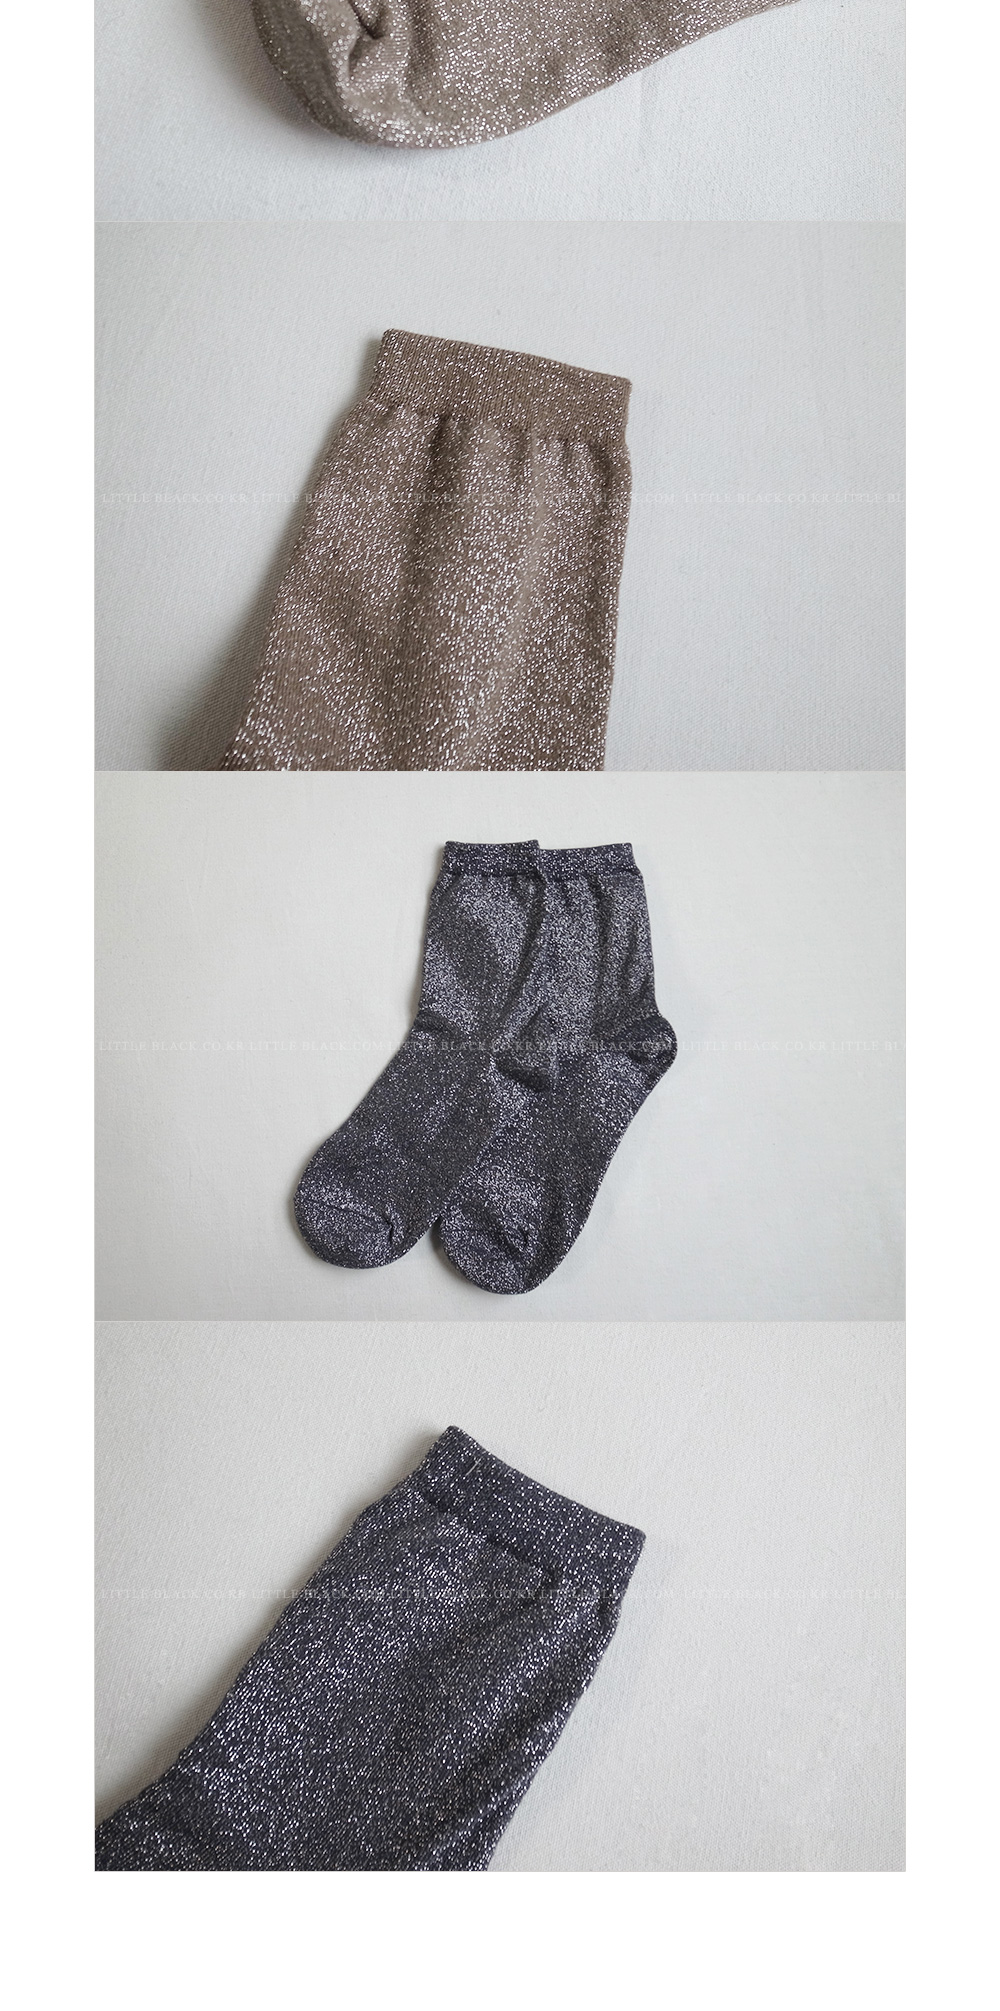 Metallic Socks|